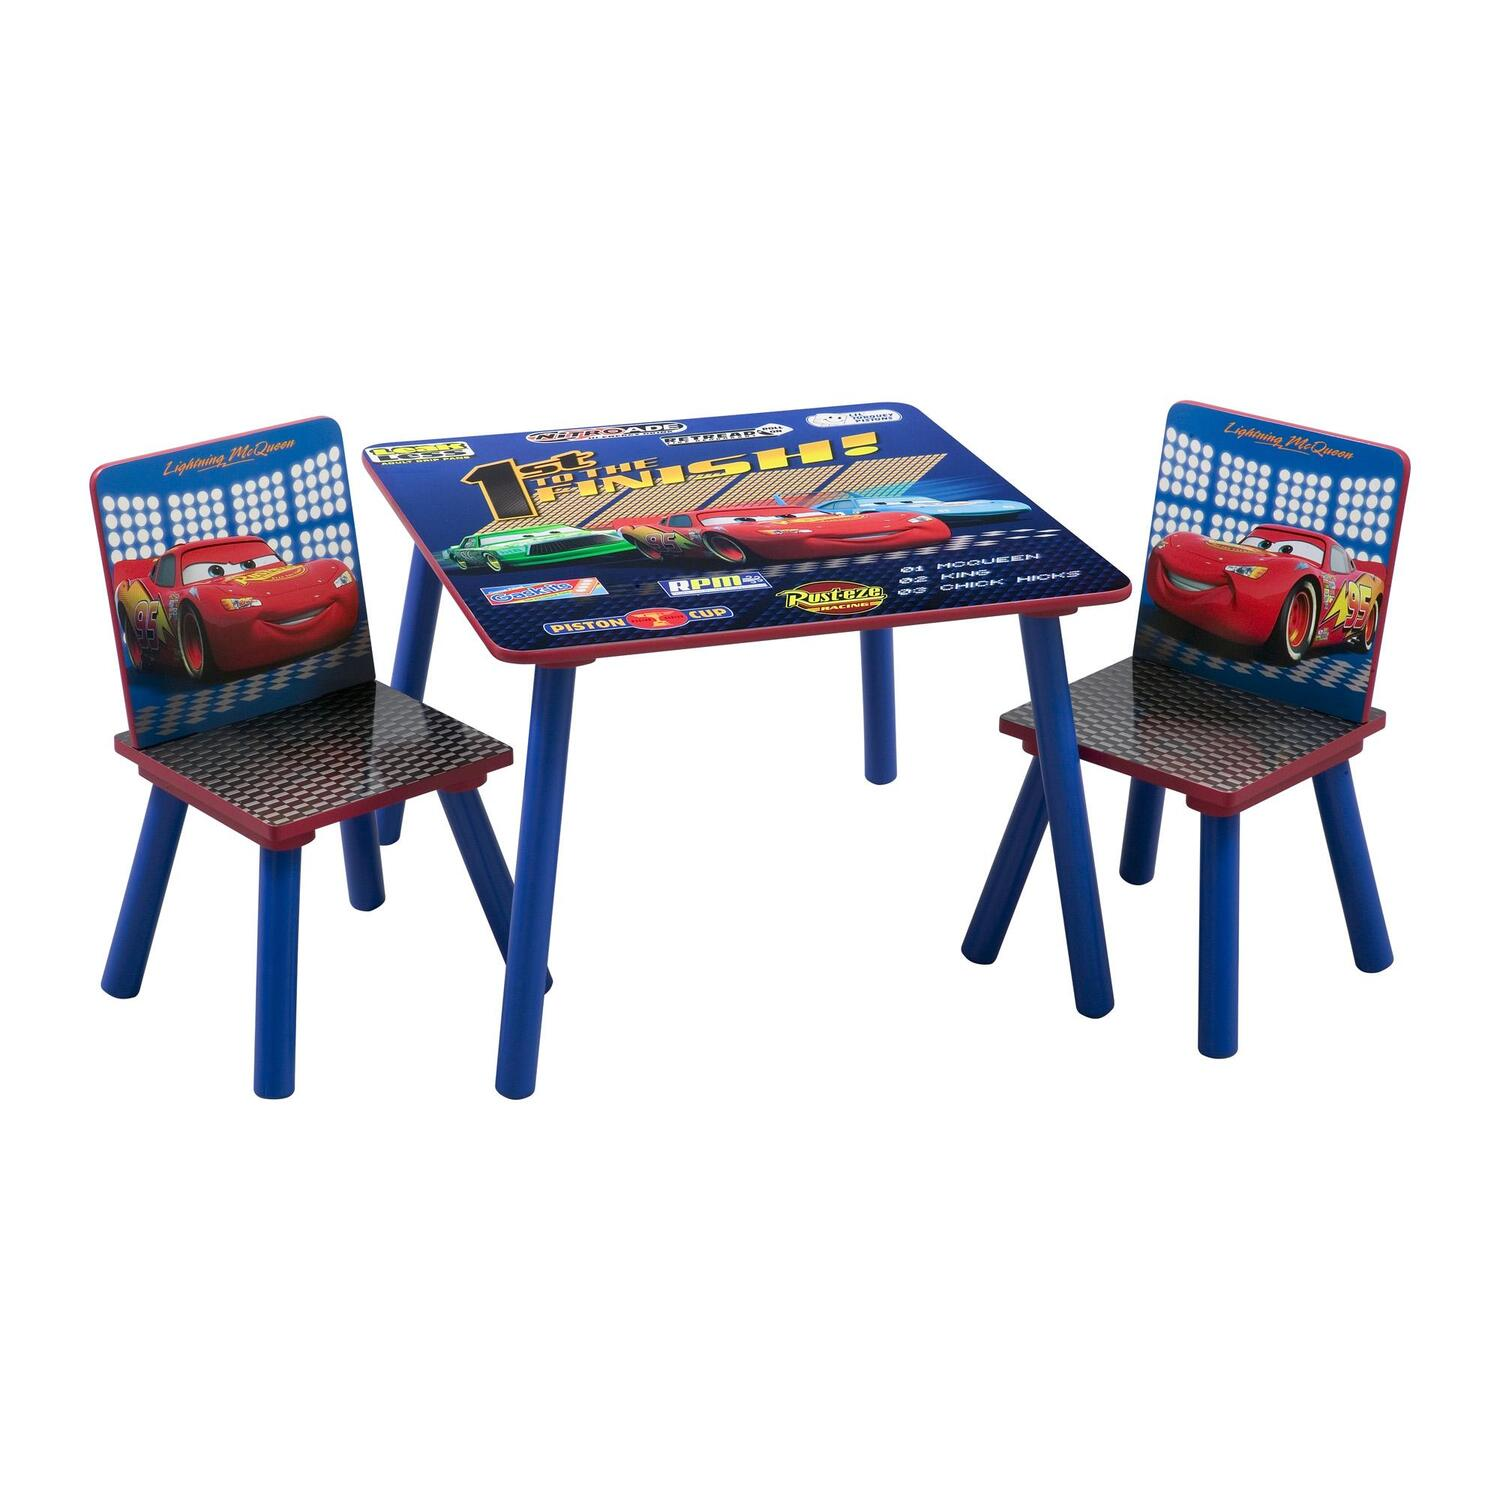 disney table and chair set how to sew spandex covers cars square by oj